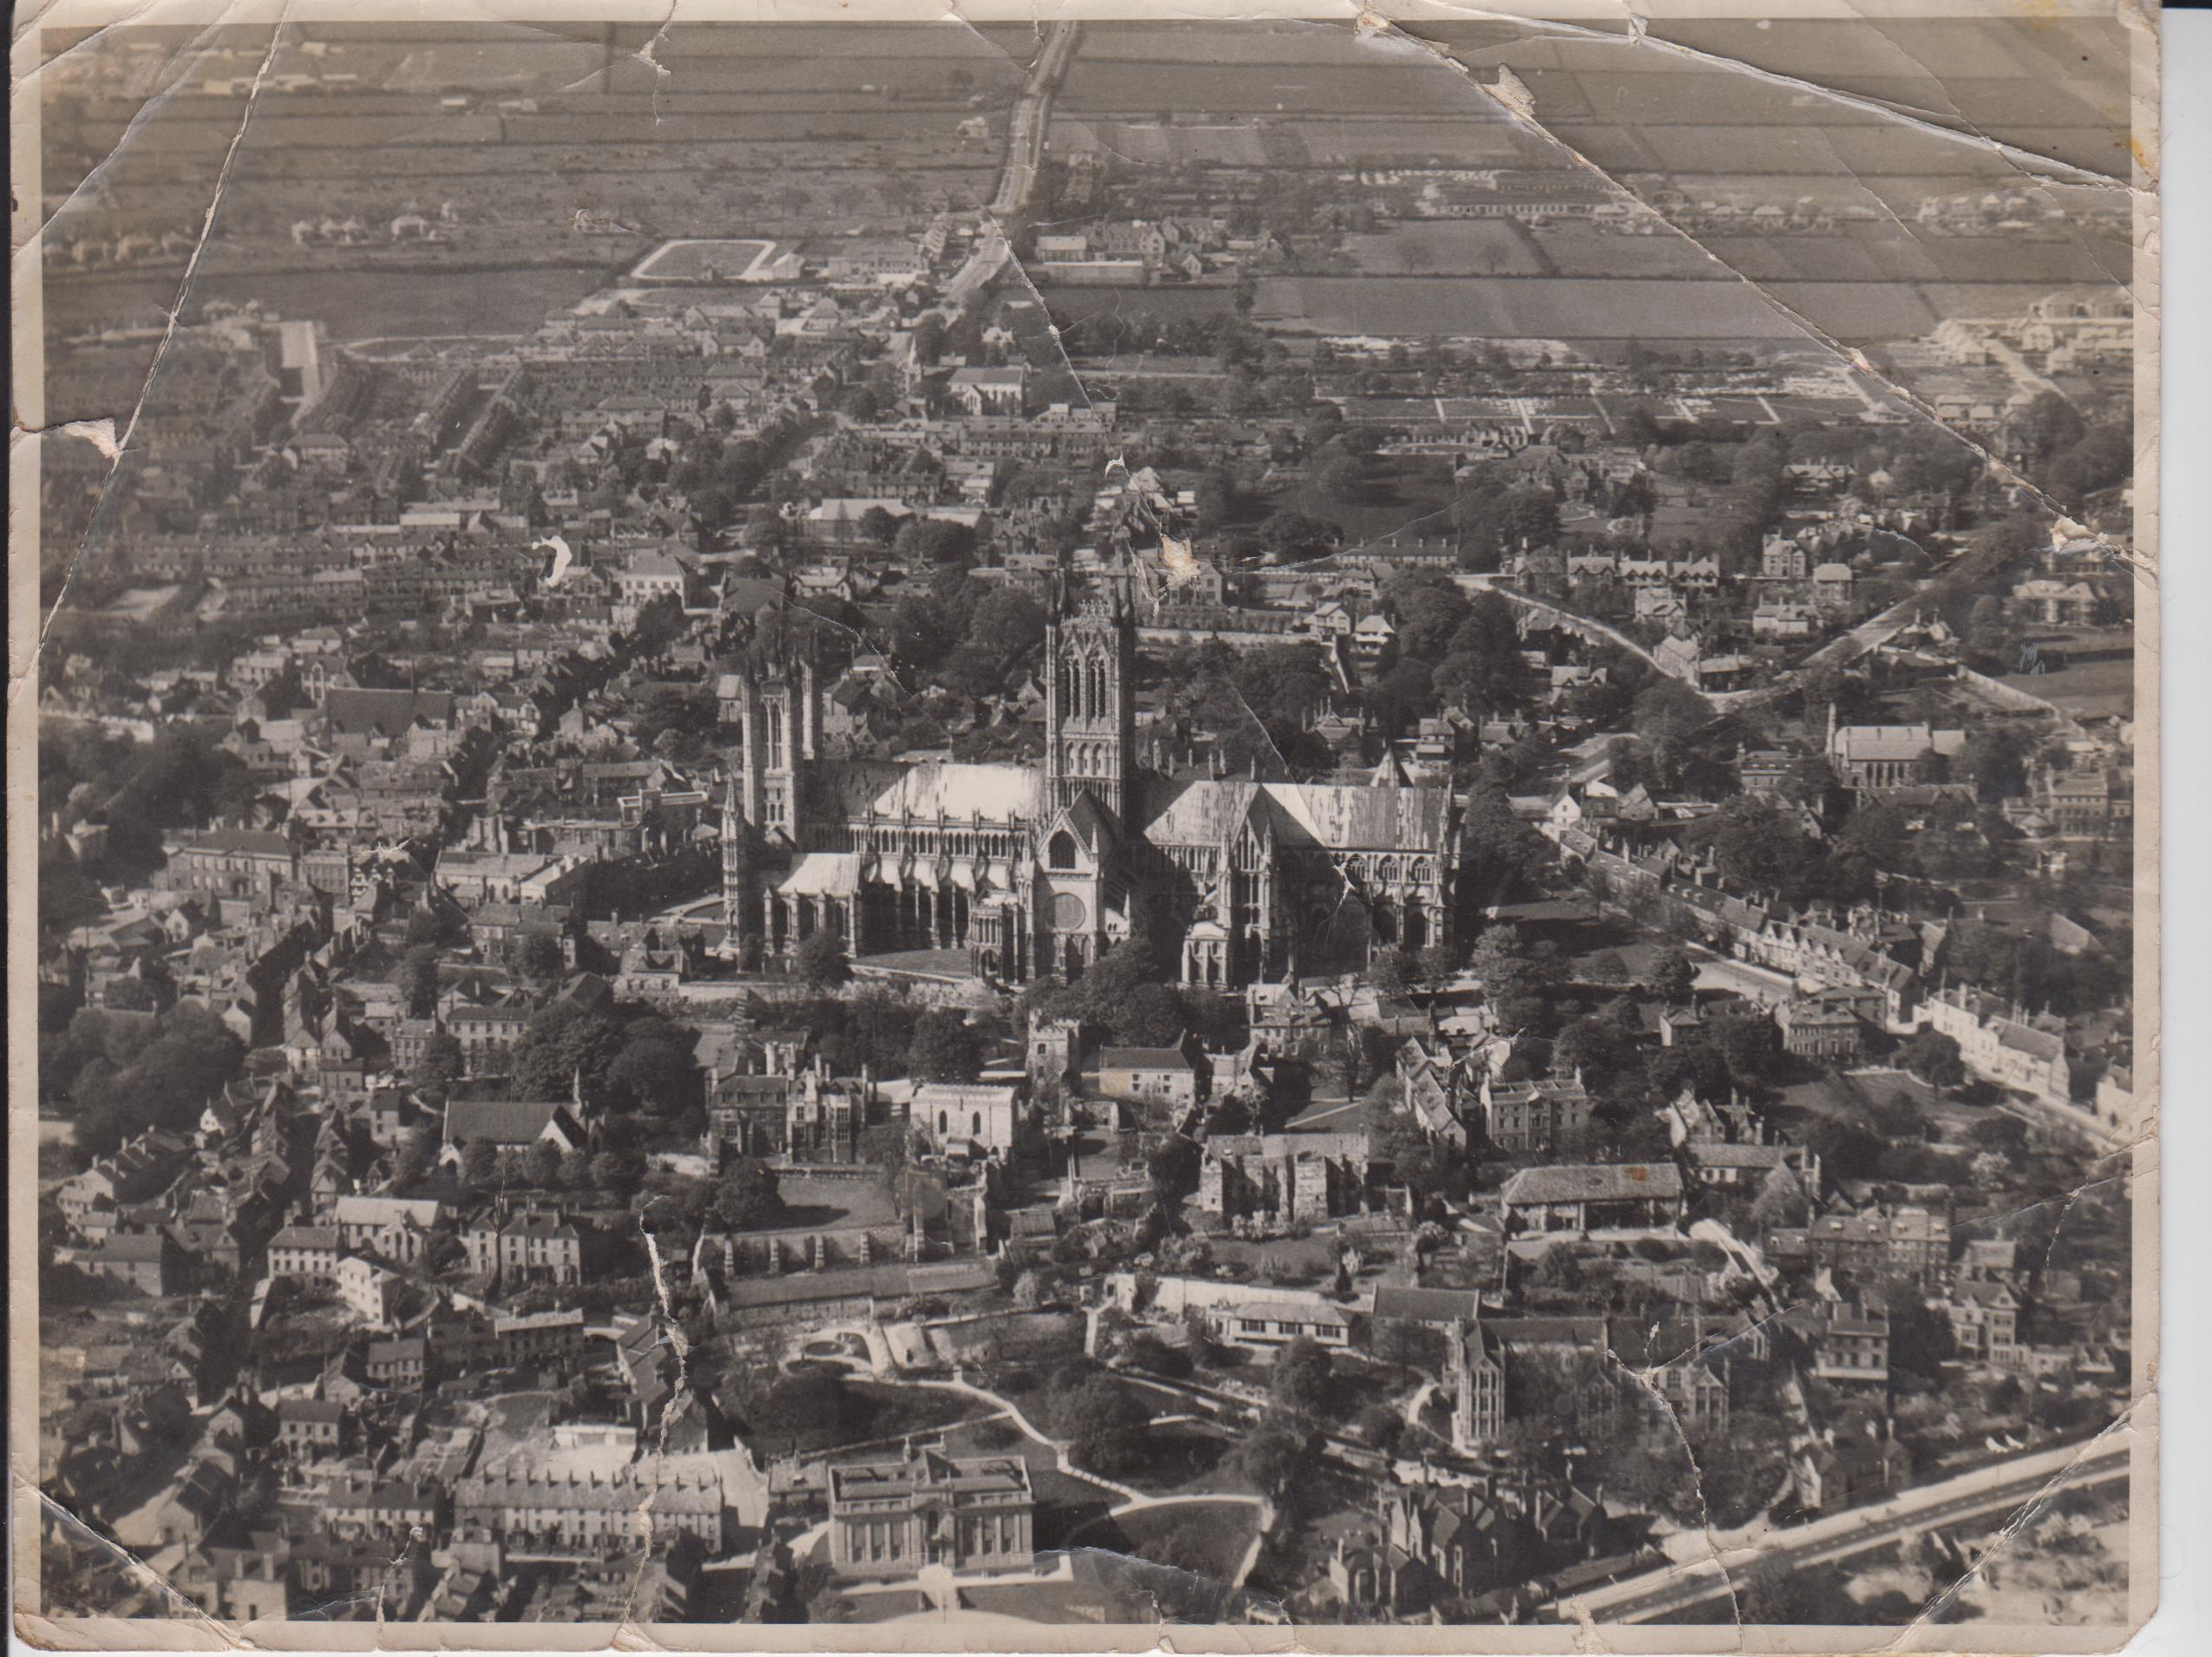 phil_aerial_view_lincoln_002.jpg